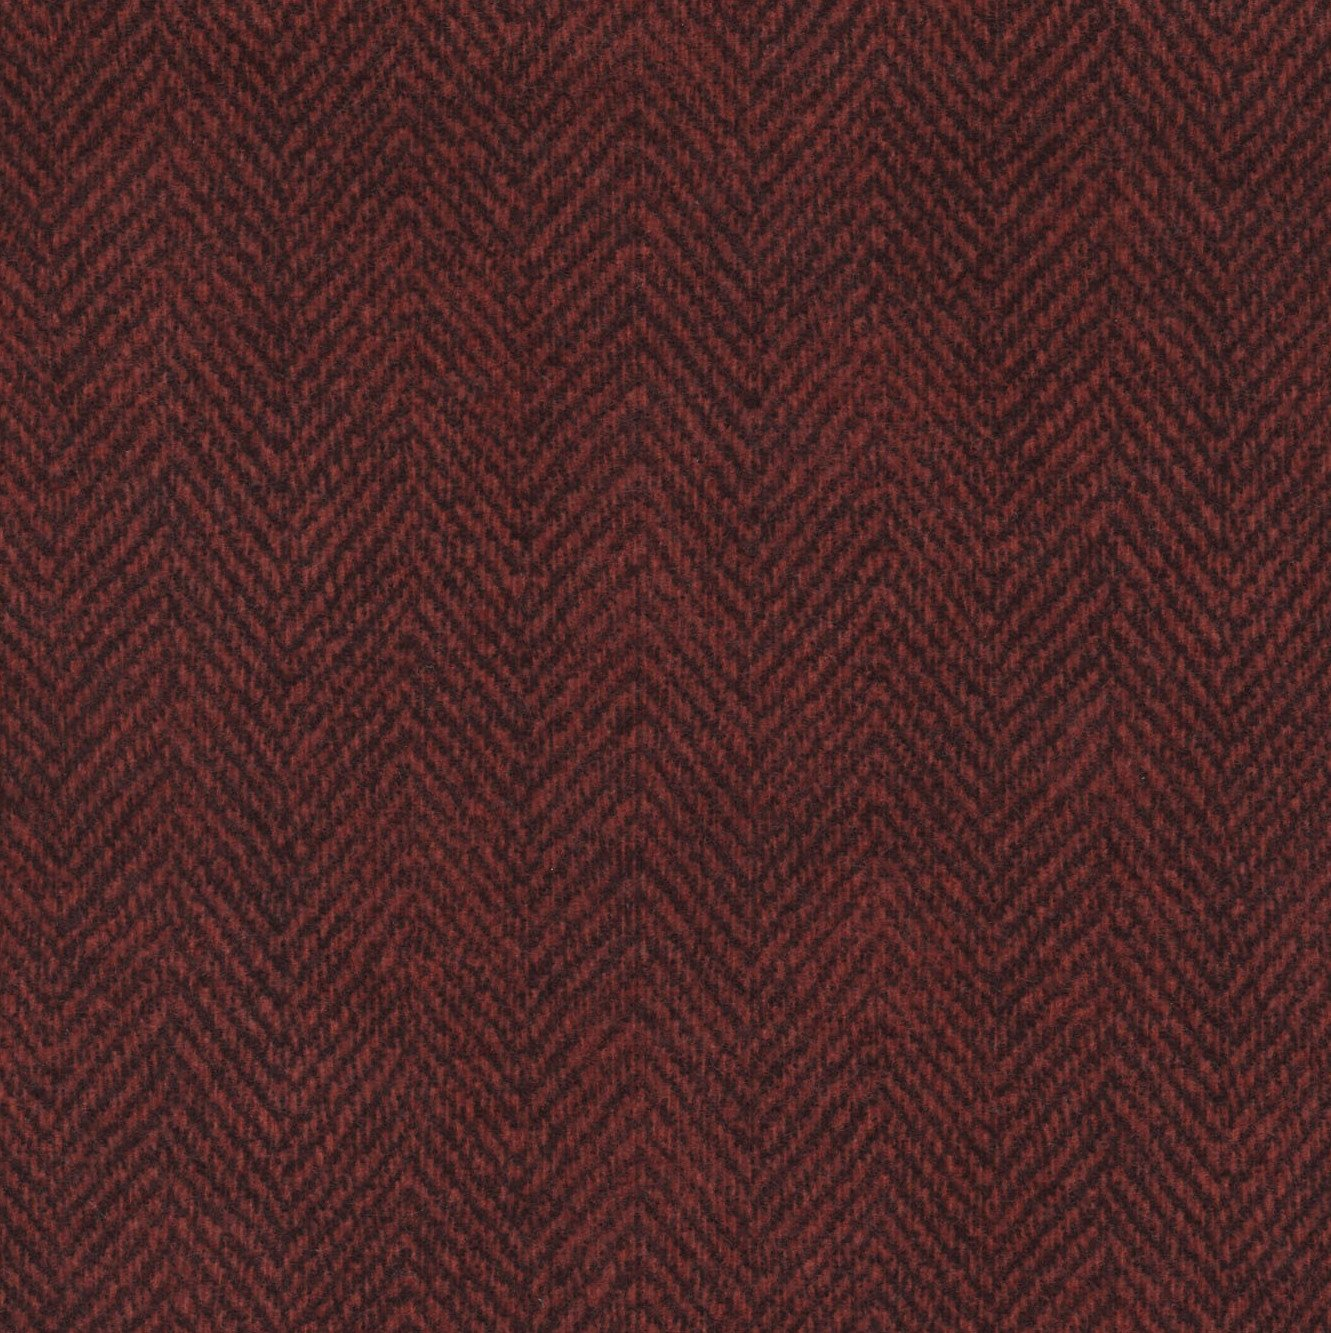 Woolies Flannel Herringbone Dark Red (MASF1841-R2)